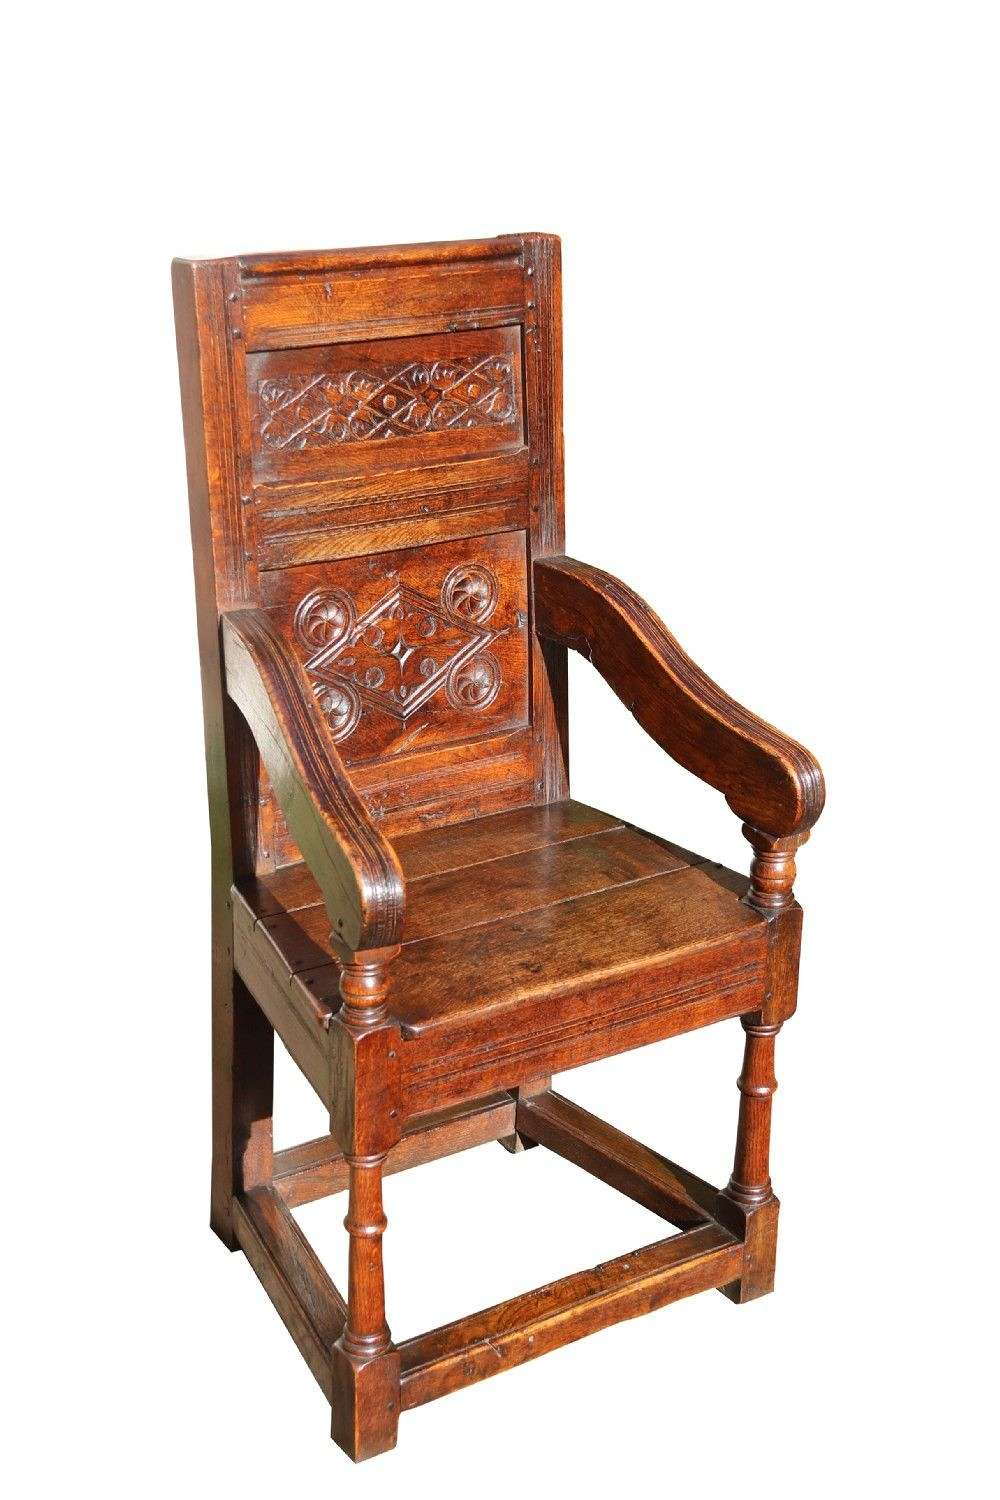 Antique English Oak Panelled And Moulded Wainscot Armchair.